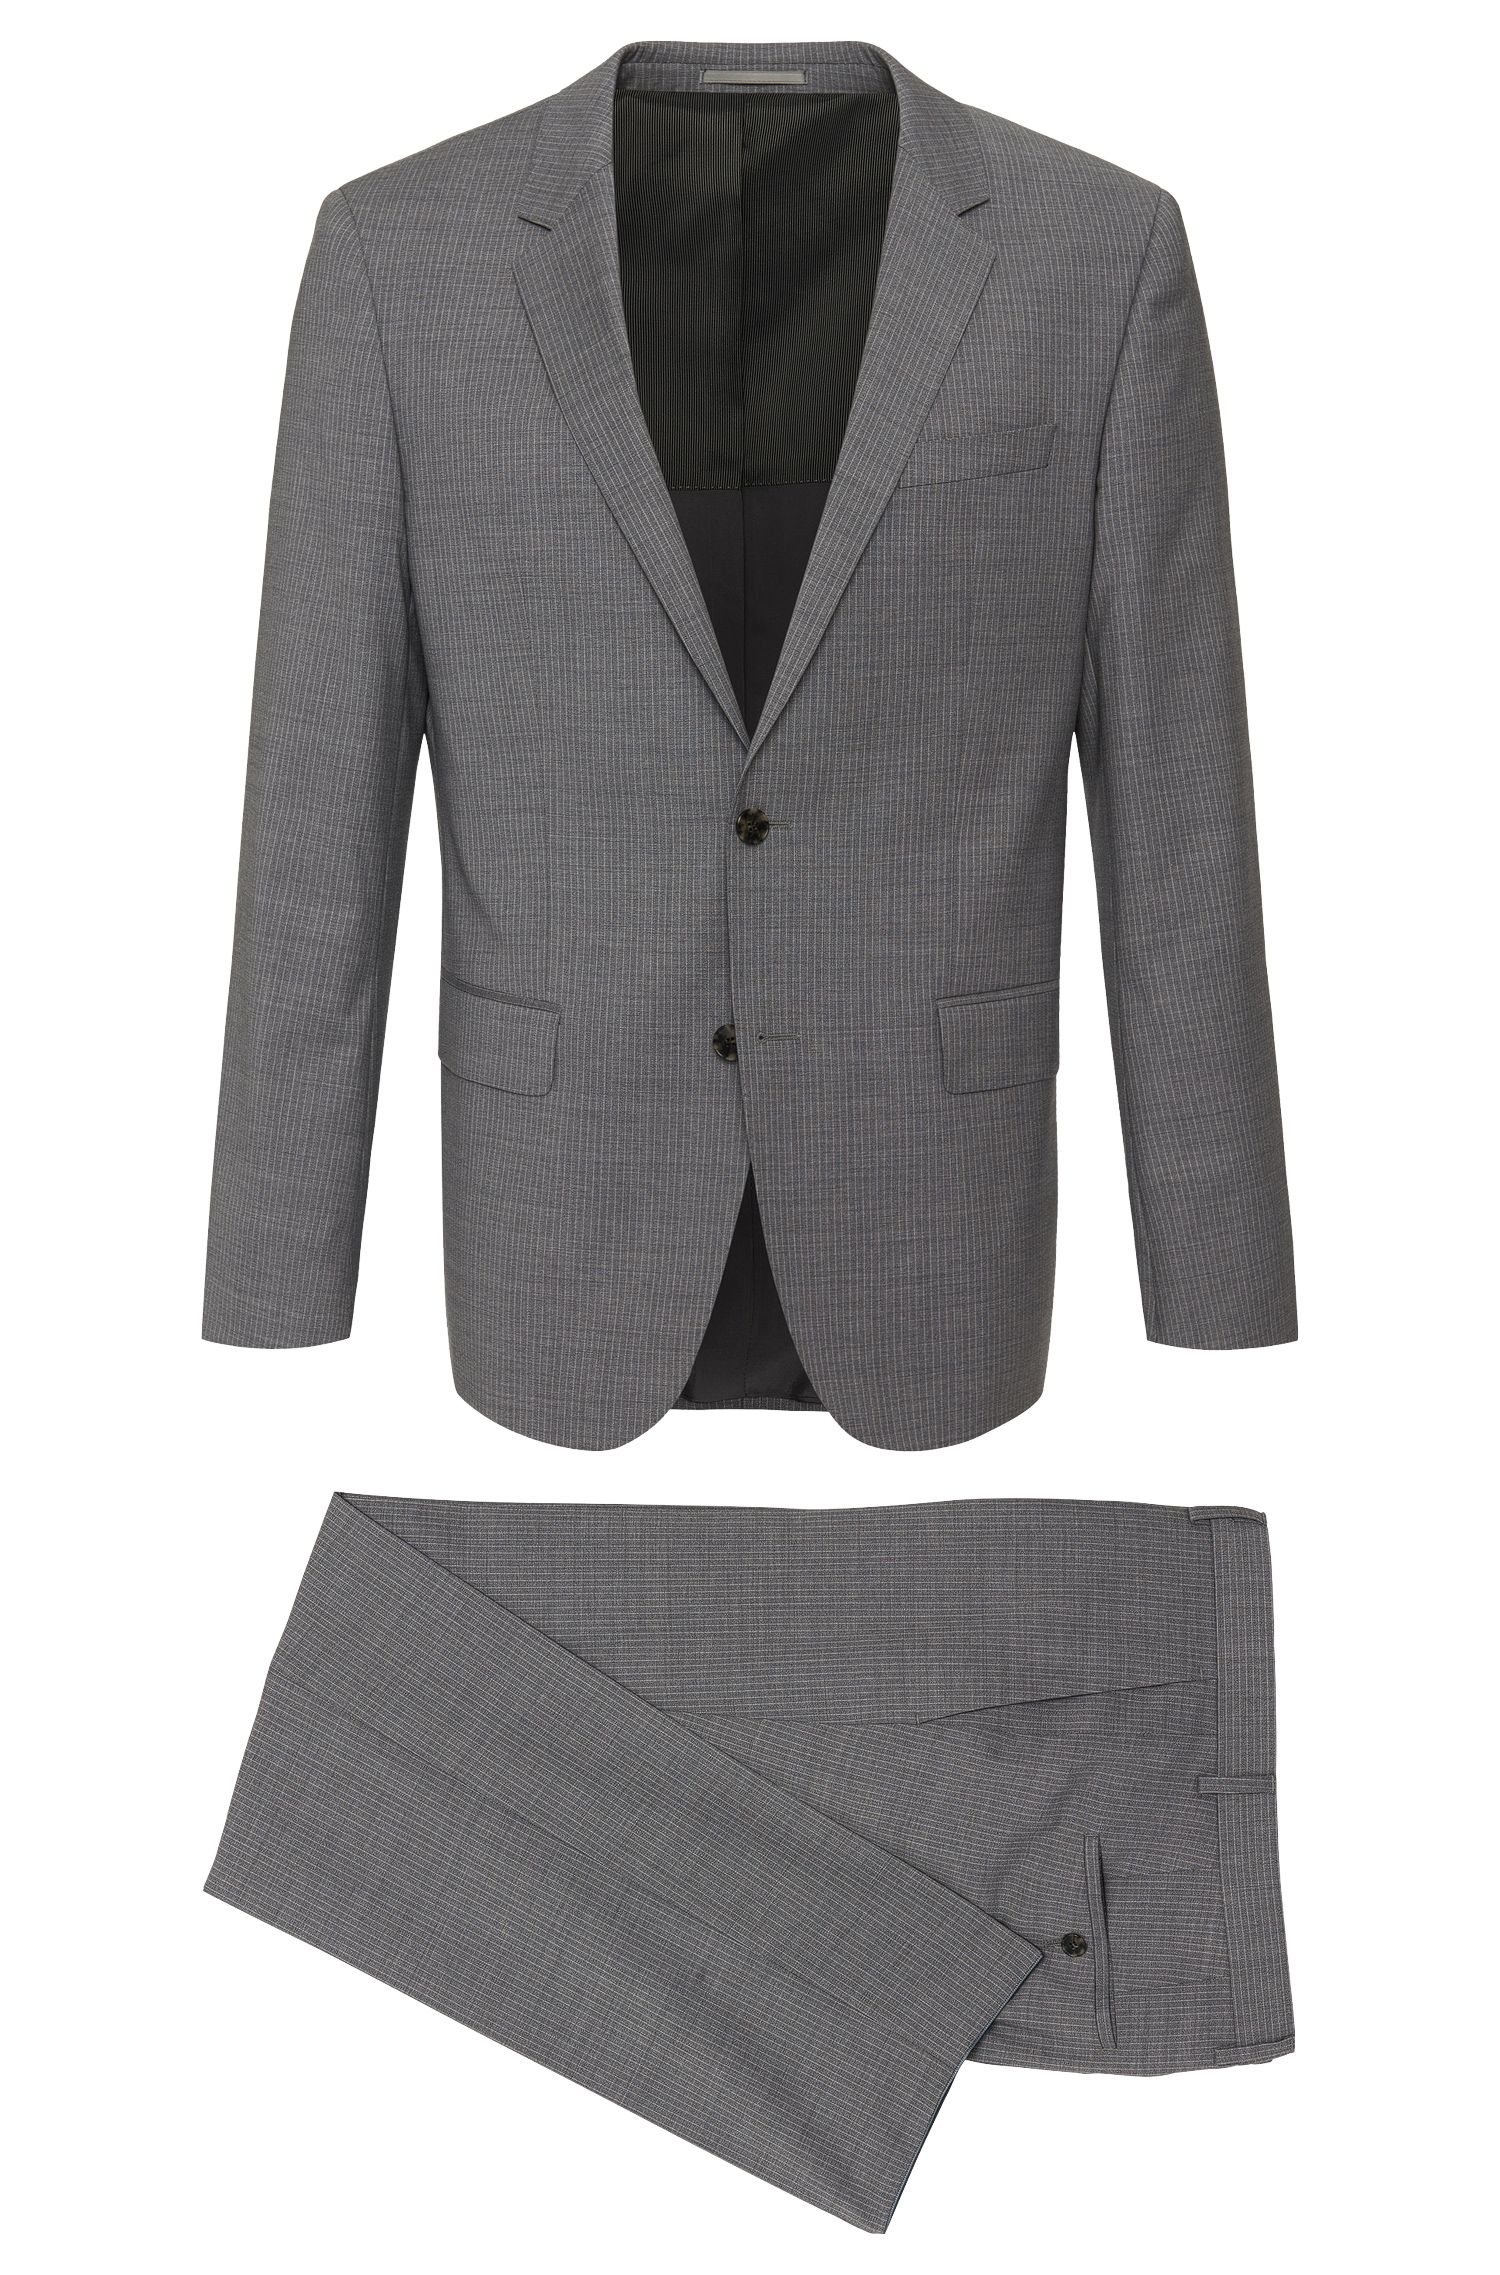 'Huge/Genius' | Slim Fit, Super 120 Italian Virgin Wool Suit